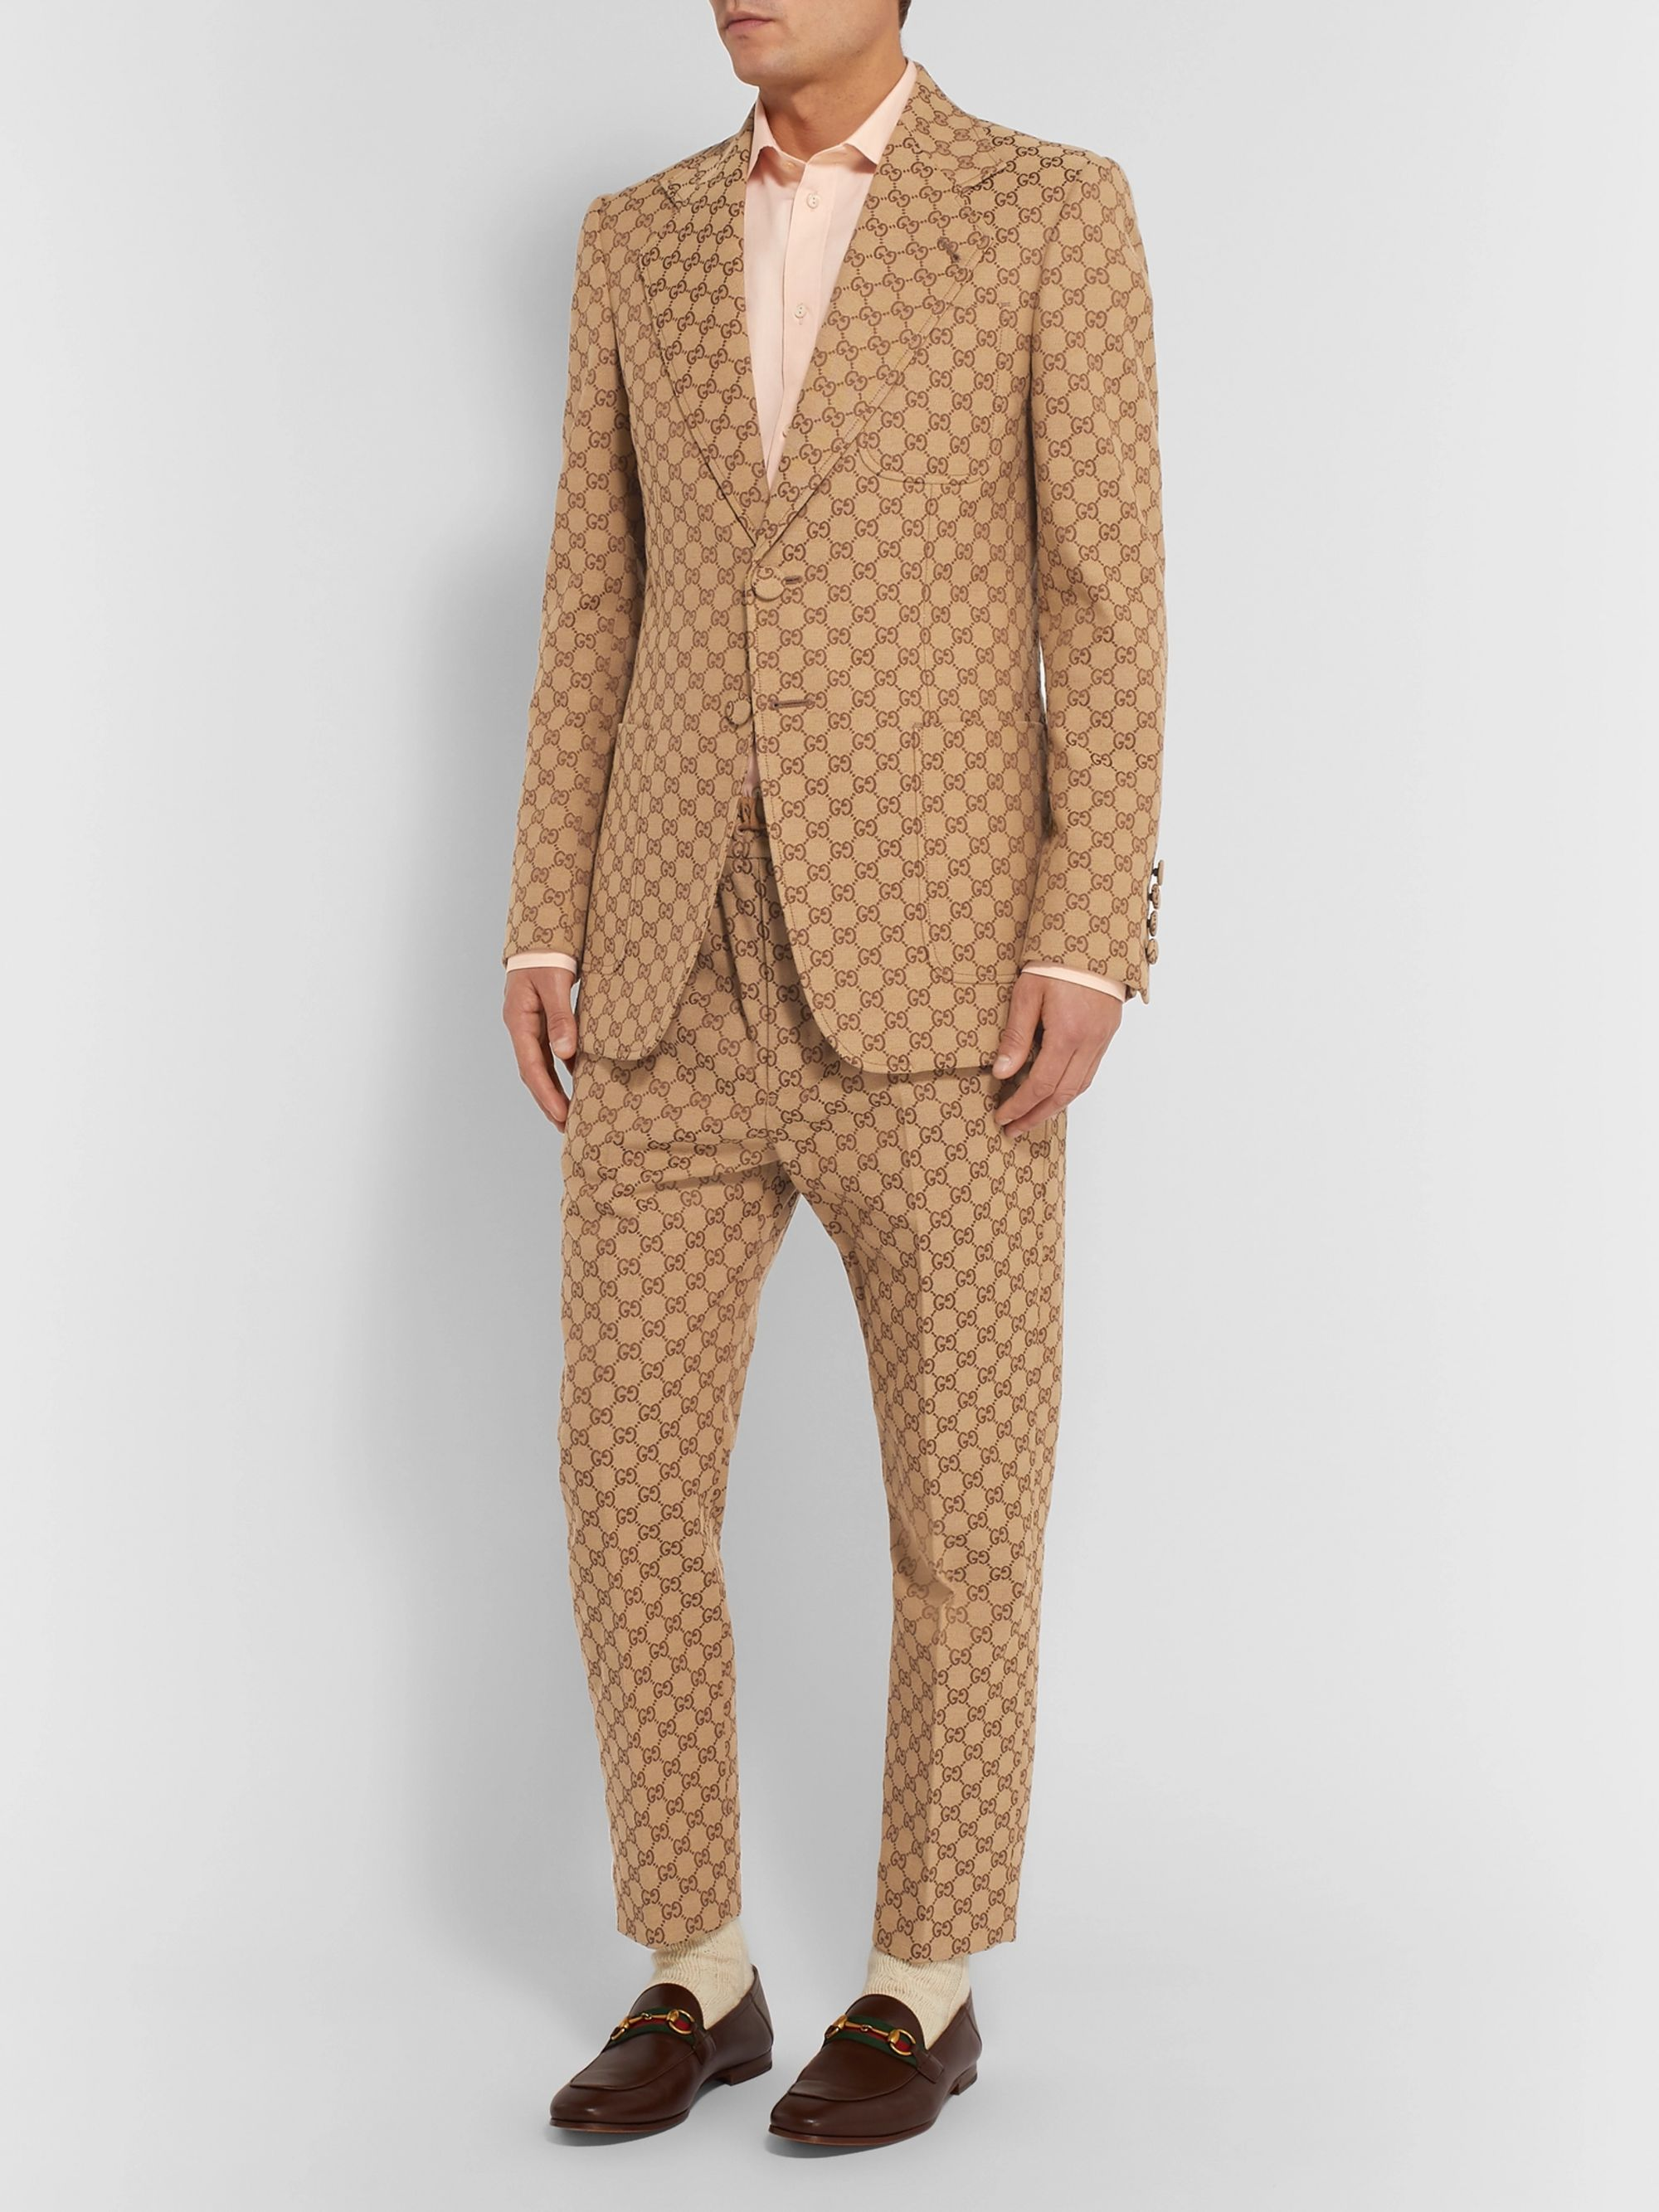 Gucci Beige Slim-Fit Logo-Jacquard Cotton-Blend Suit Jacket